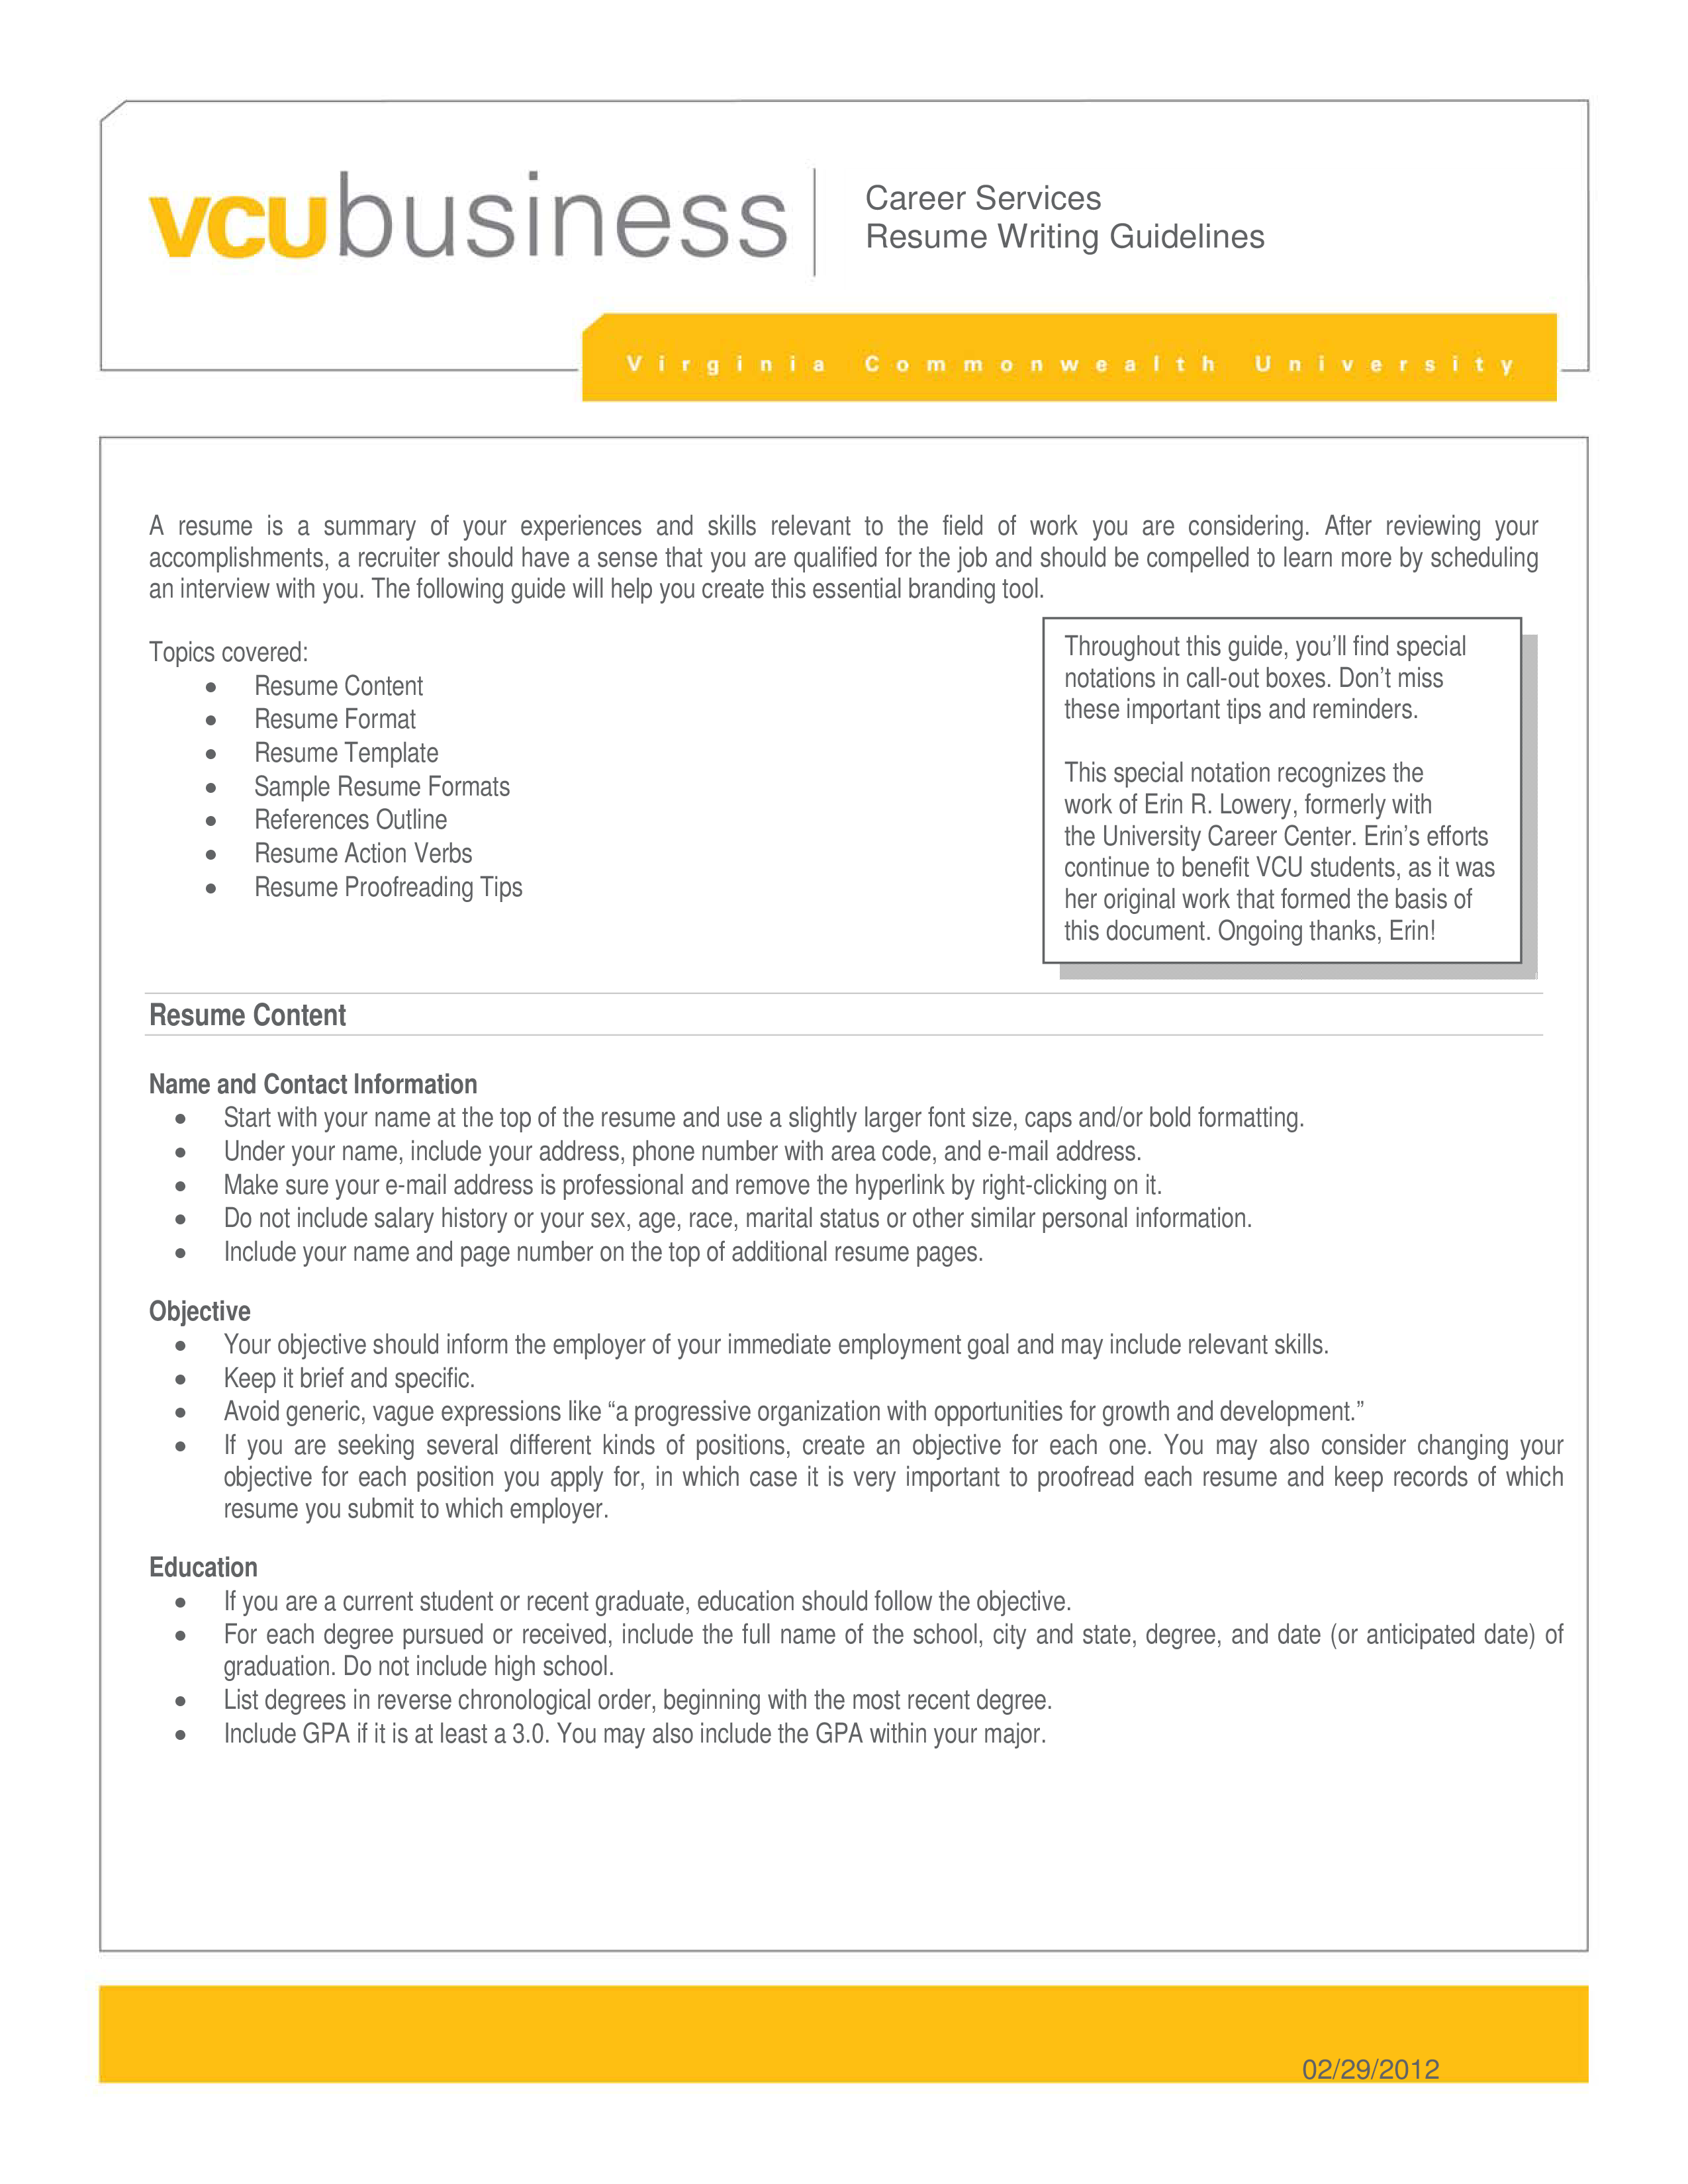 Free Business Management And Administration Resume Templates At